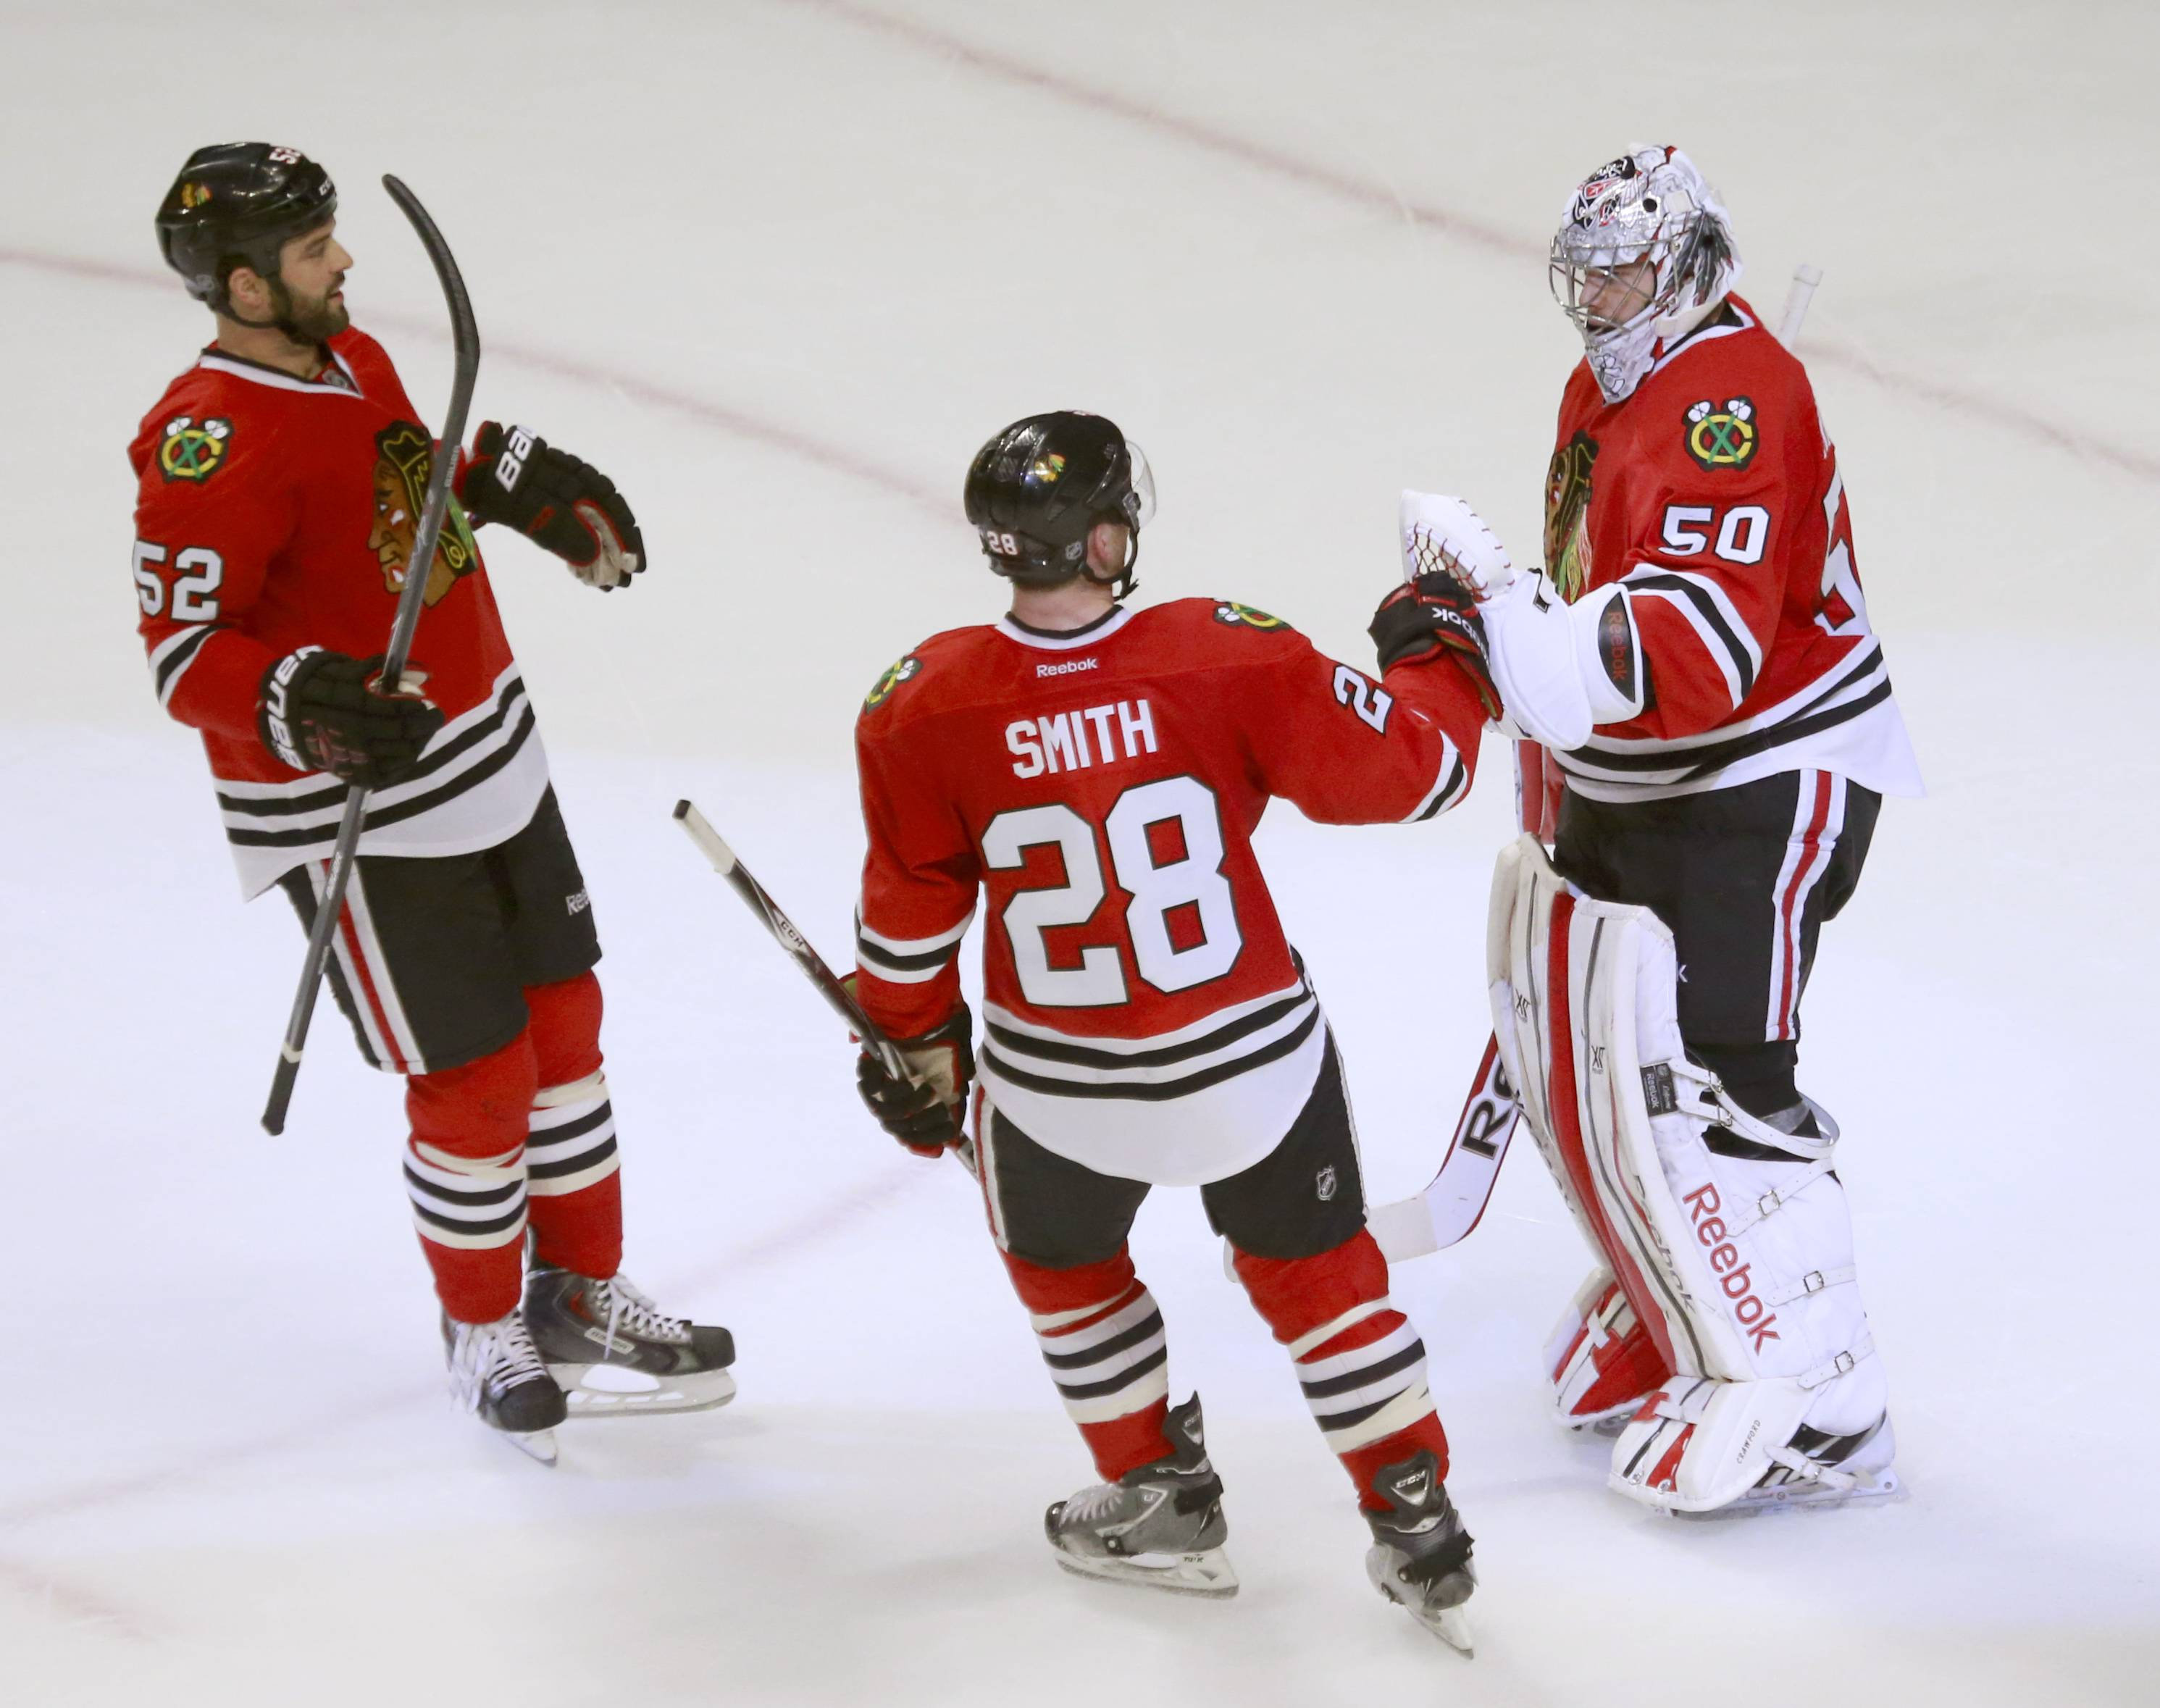 Blackhawks goalie Corey Crawford (50) celebrates with Brandon Bollig (52) and Ben Smith after the Blackhawks' 2-0 win over the St. Louis Blues in Game 3 of a first-round NHL hockey Stanley Cup playoff series game Monday, April 21, 2014, in Chicago.